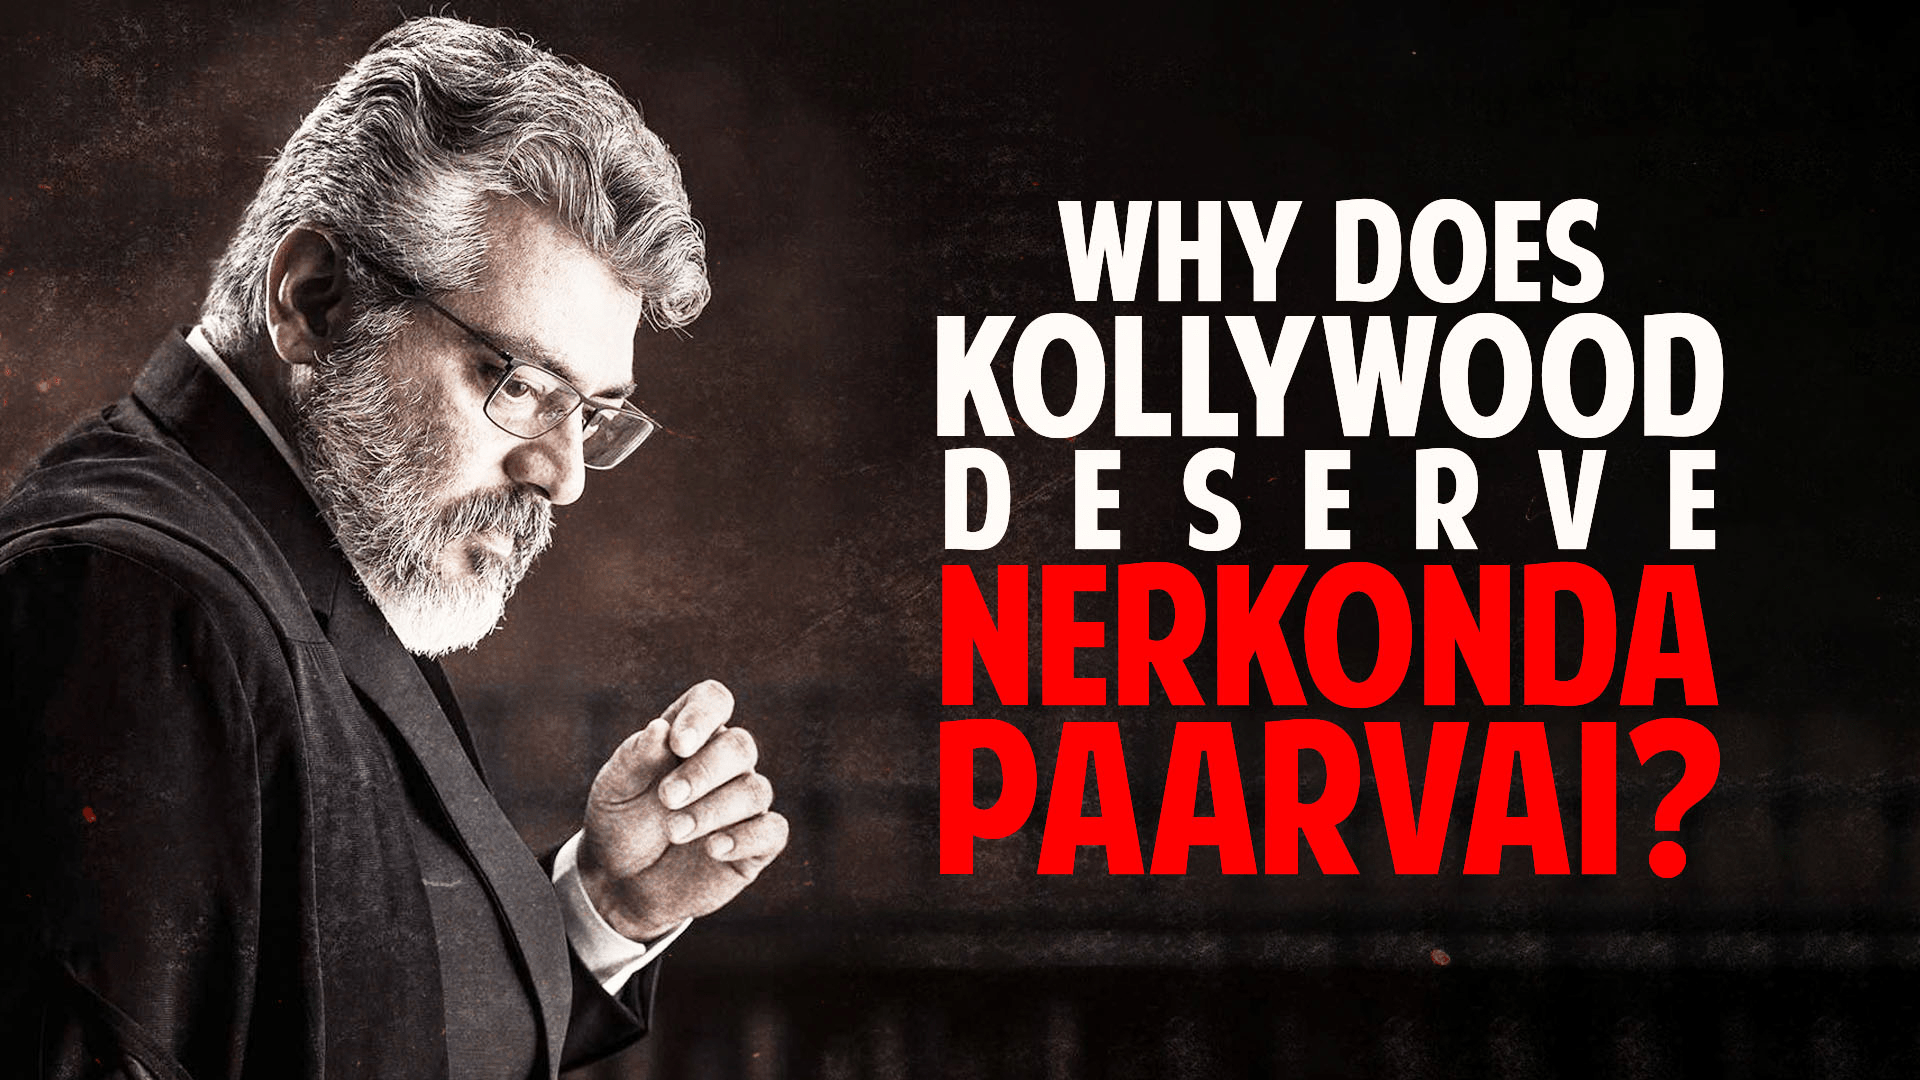 WHY  KOLLYWOOD DESERVES A NERKONDA PAARVAI?